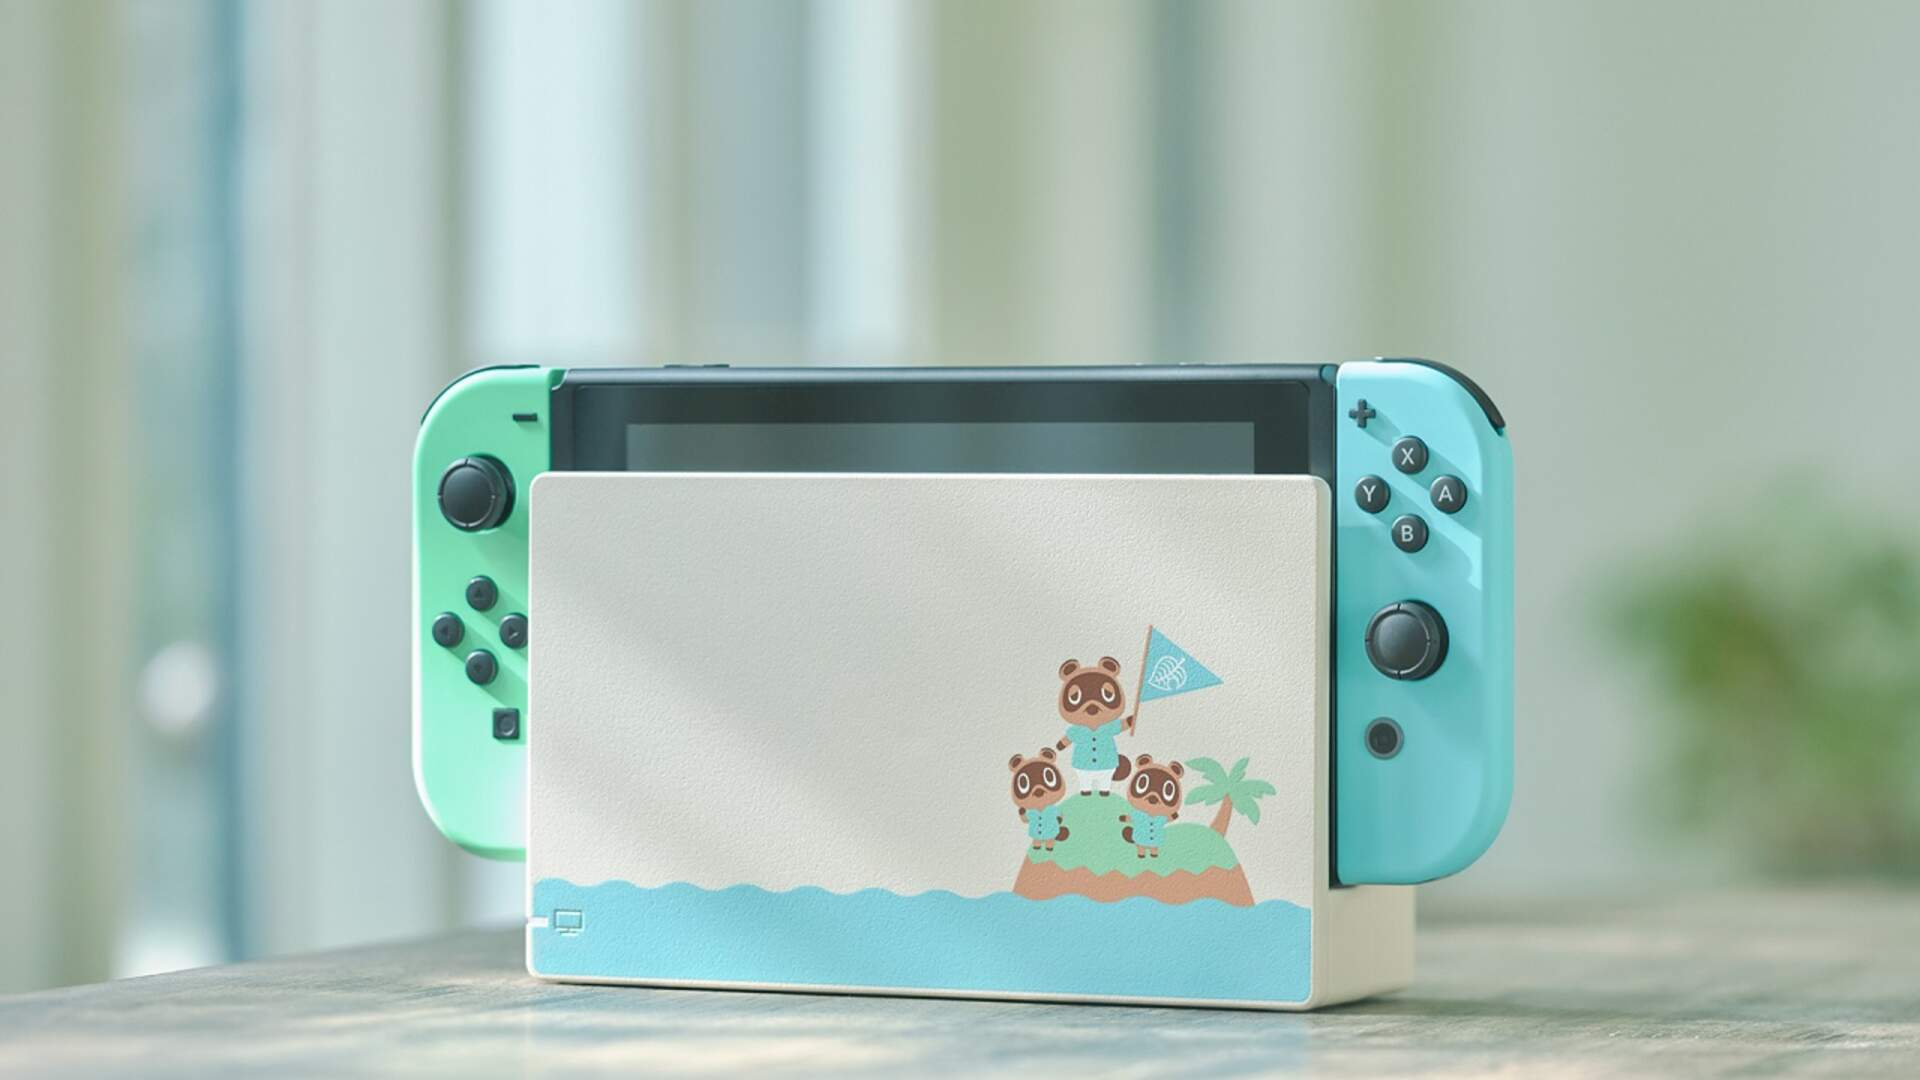 There Isn't a Need for a Third Nintendo Switch Just Yet